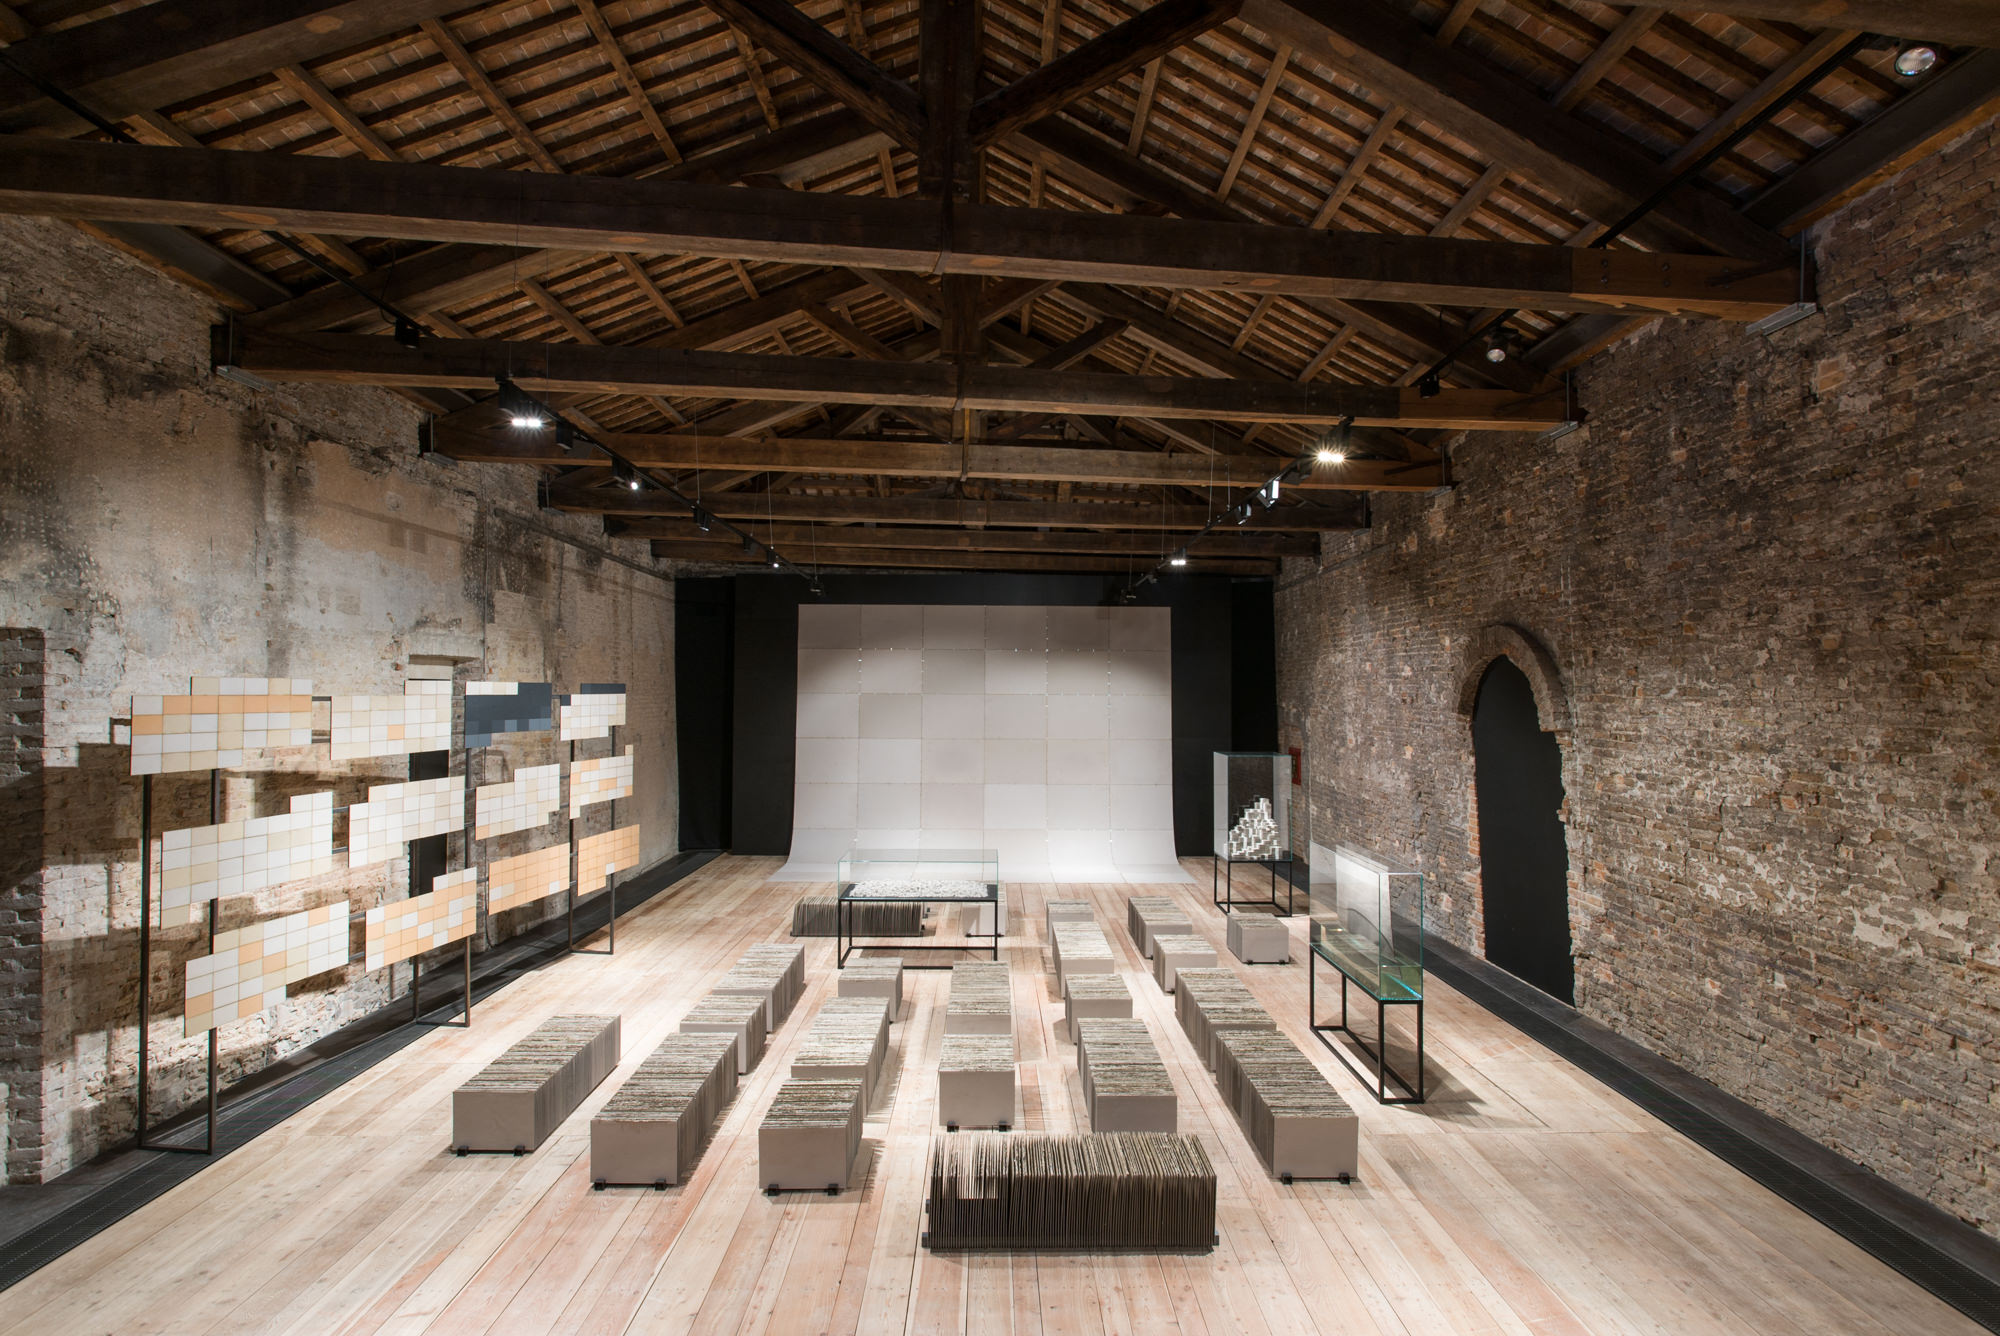 Installation view: Misplaced Ruins, Pavilion of Peru, 56th Biennale di Venezia, 2015 |  | ProjecteSD